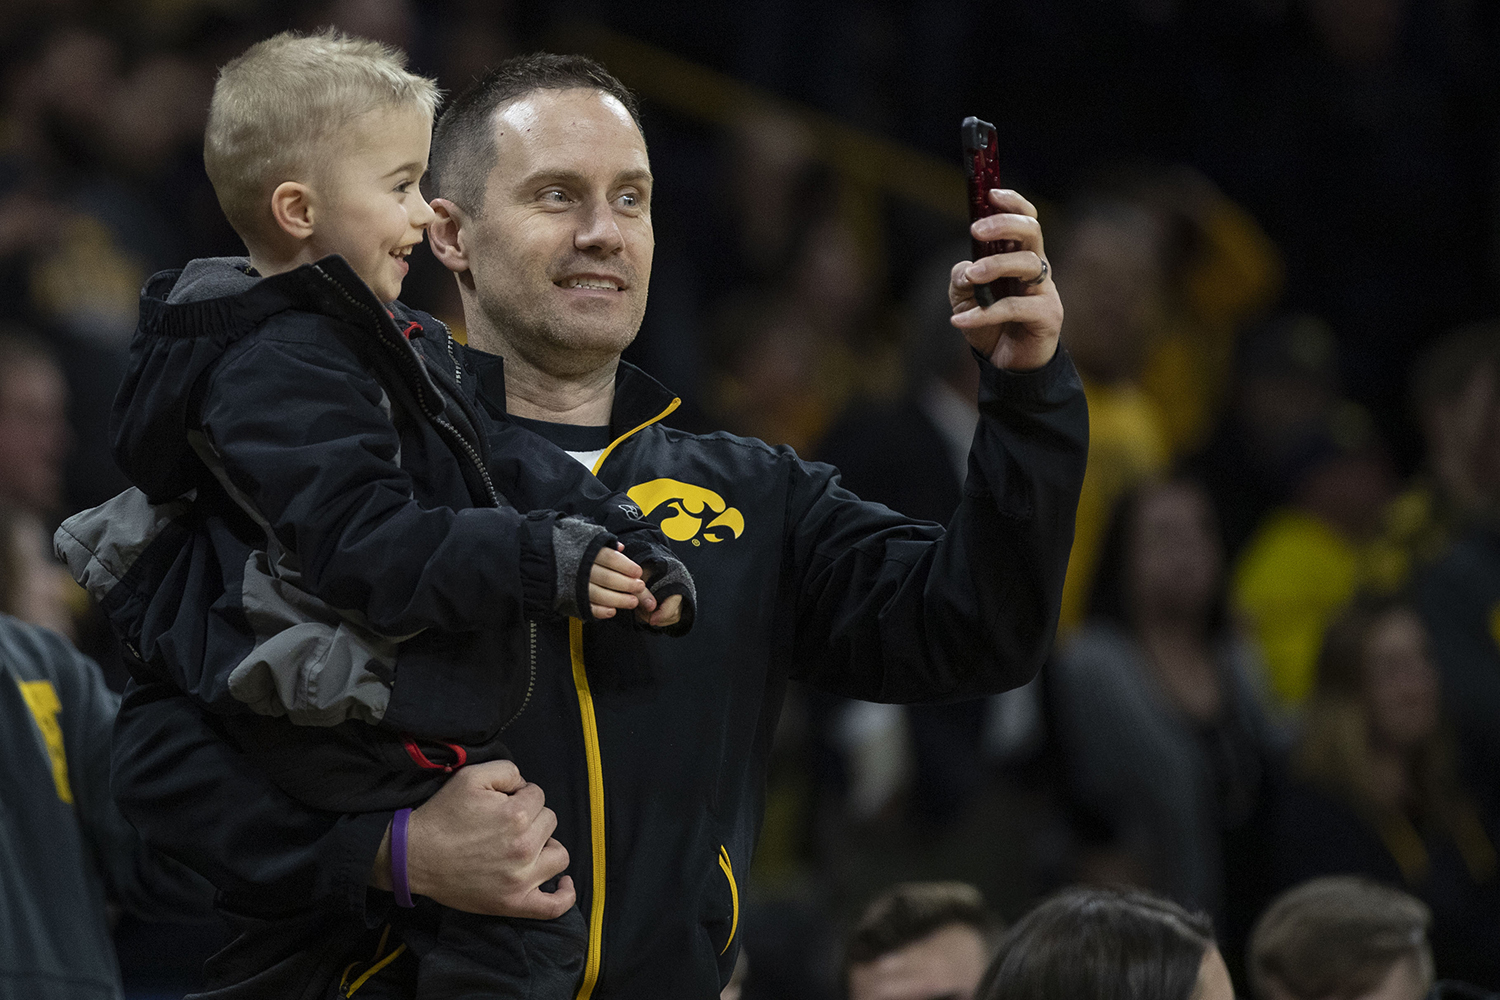 Iowa+fans+snap+a+selfie+during+the+Iowa%2FMichigan+men%27s+basketball+game+at+Carver-Hawkeye+Arena+on+Friday%2C+February+1%2C+2019.+The+Hawkeyes+took+down+the+No.+5+ranked+Wolverines%2C+74-59.+